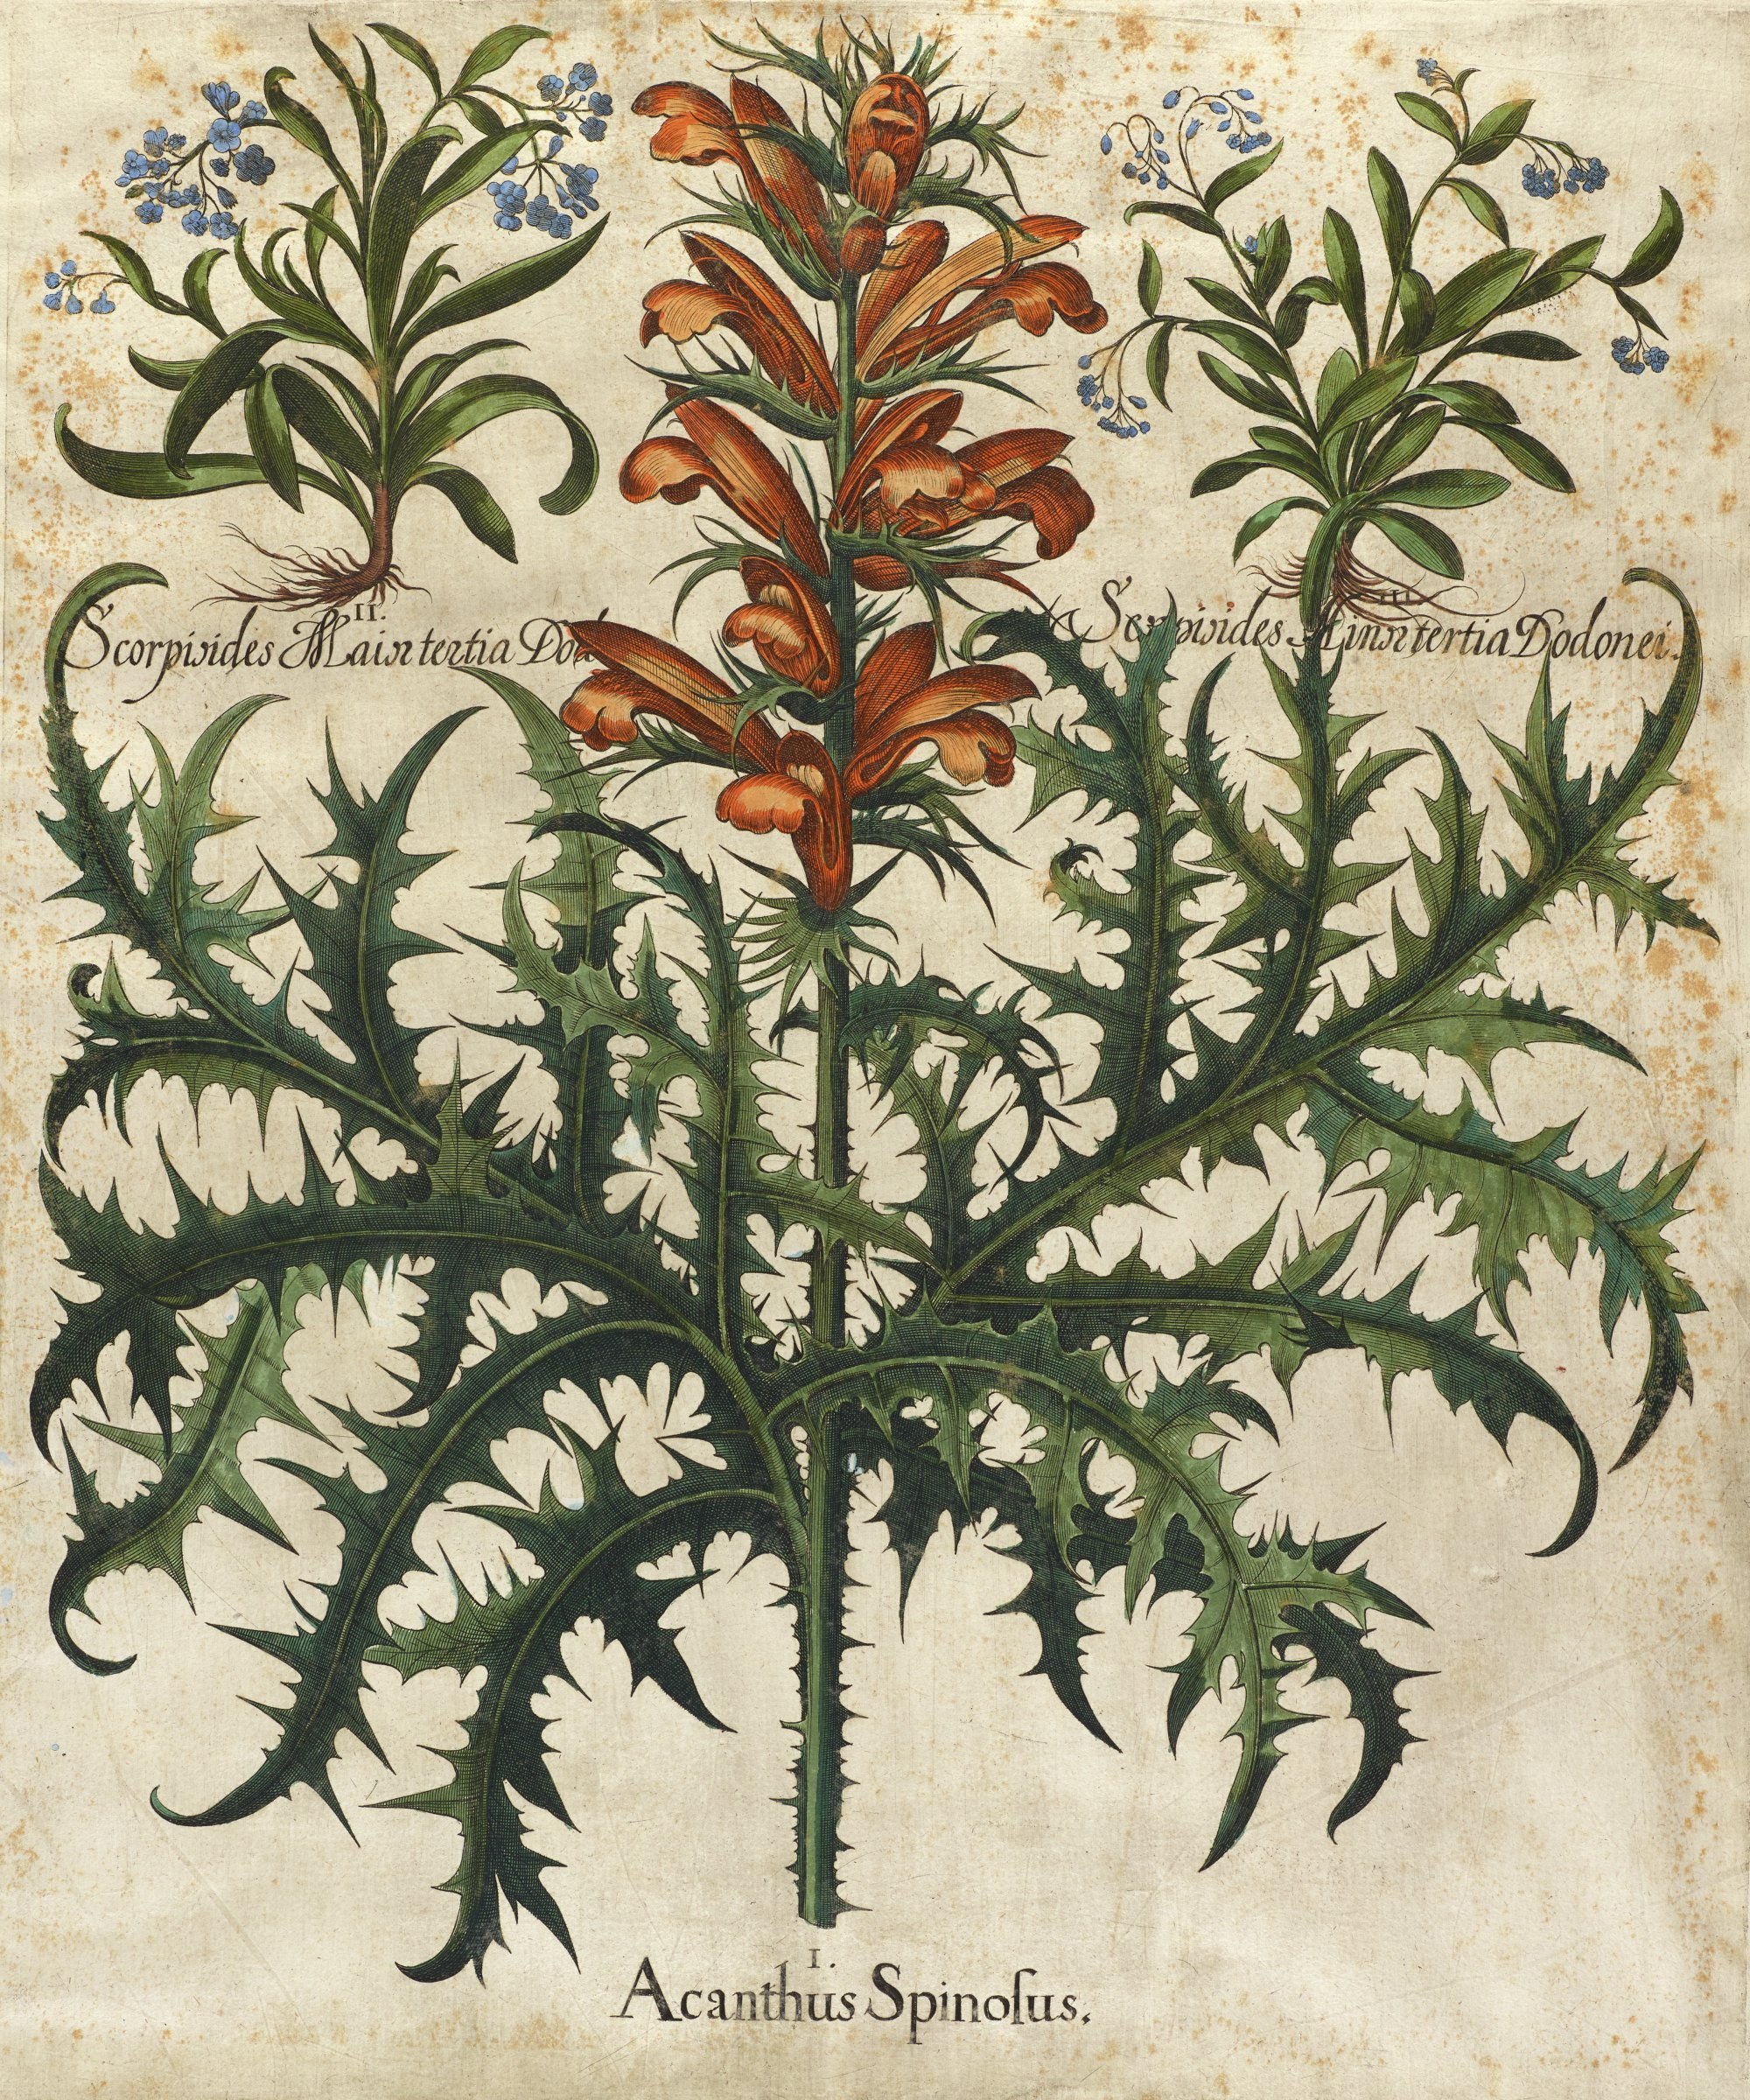 A botanical print depicting a plant with orange flowers and multiple spikey leaves. In the upper left and right are smaller depictions of two different plants with blue flowers and multiple long, smooth leaves.